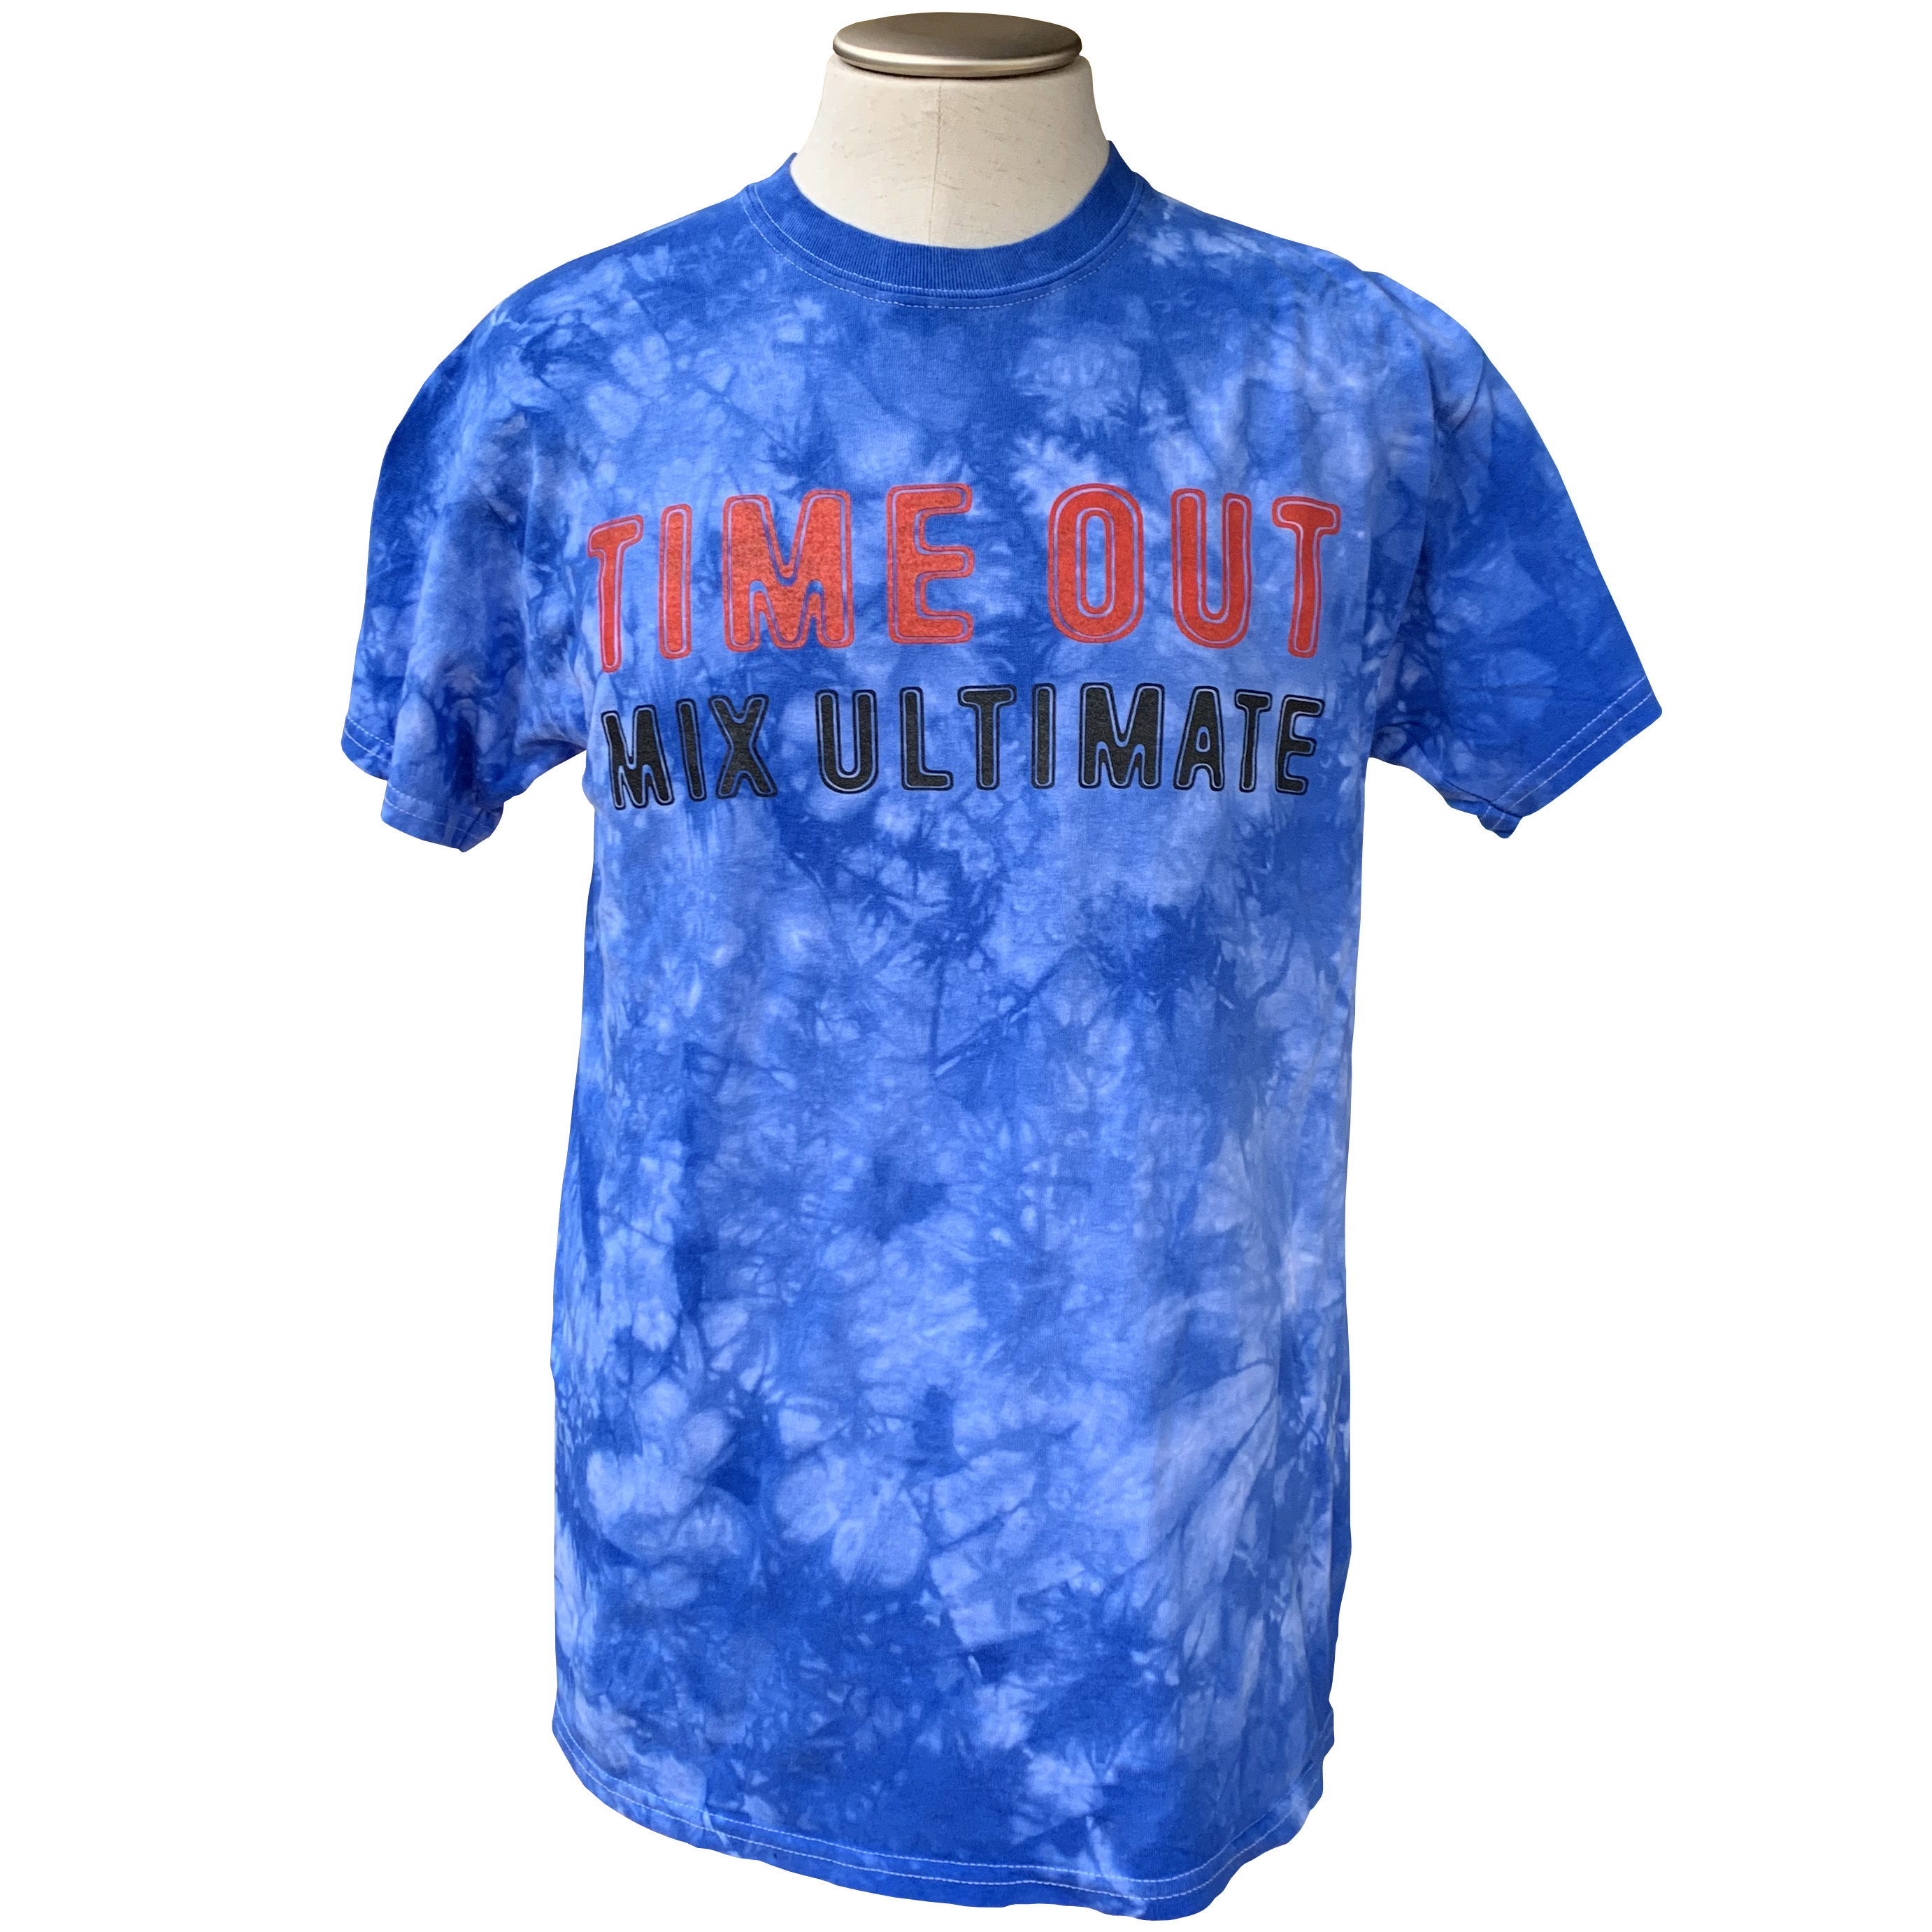 TIME OUT Tシャツ